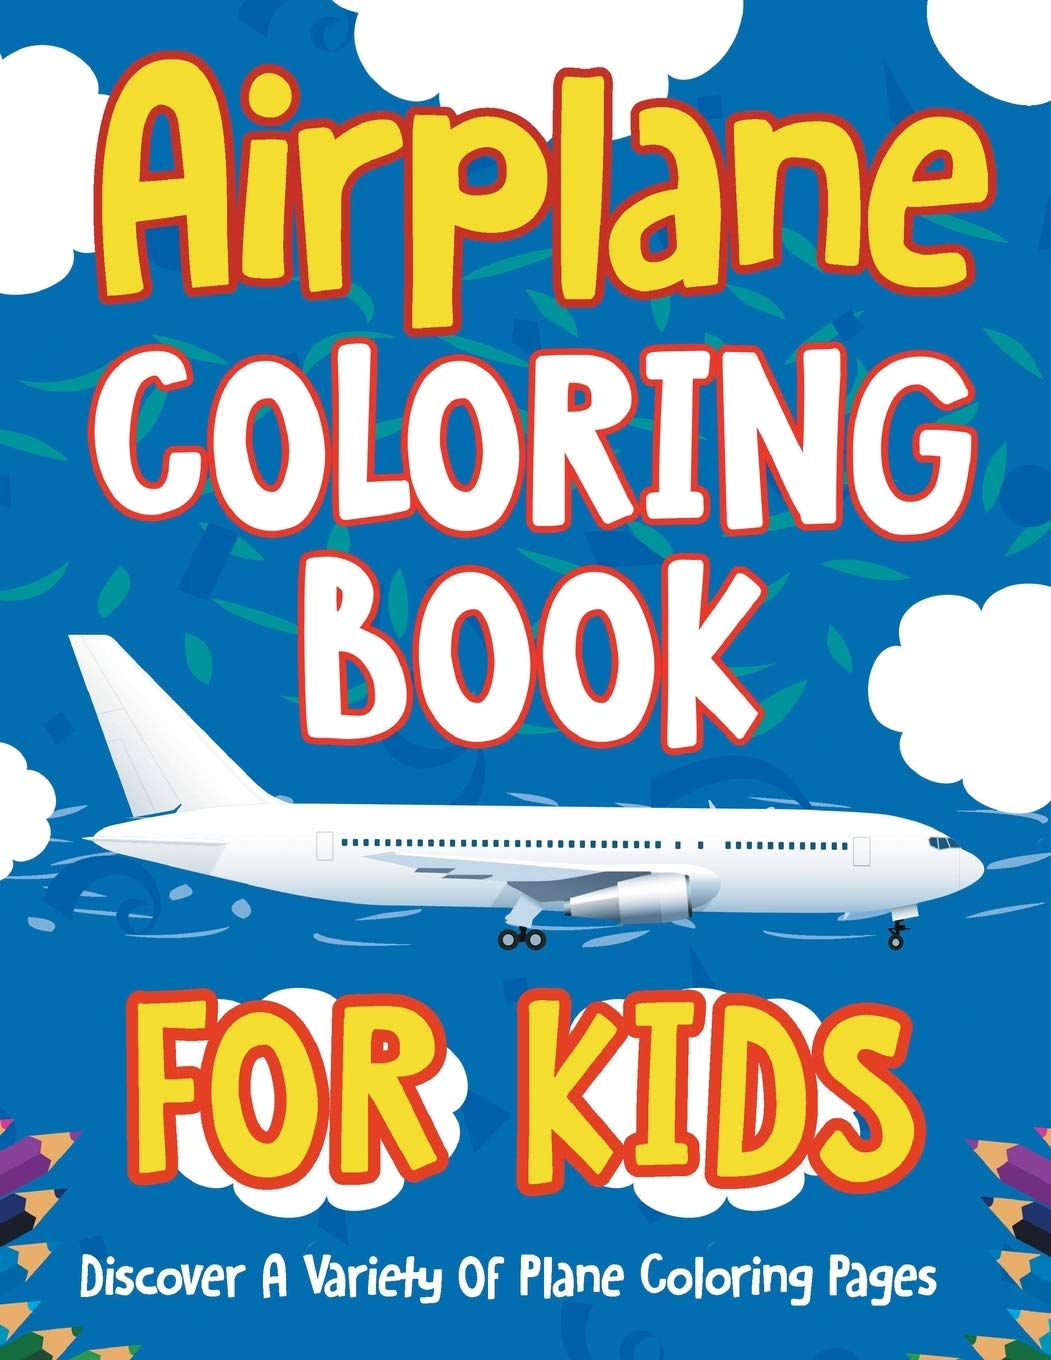 Airplane Coloring Book For Kids Discover A Variety Of Plane Coloring Pages Illustrations Bold 9781071701157 Amazon Com Books